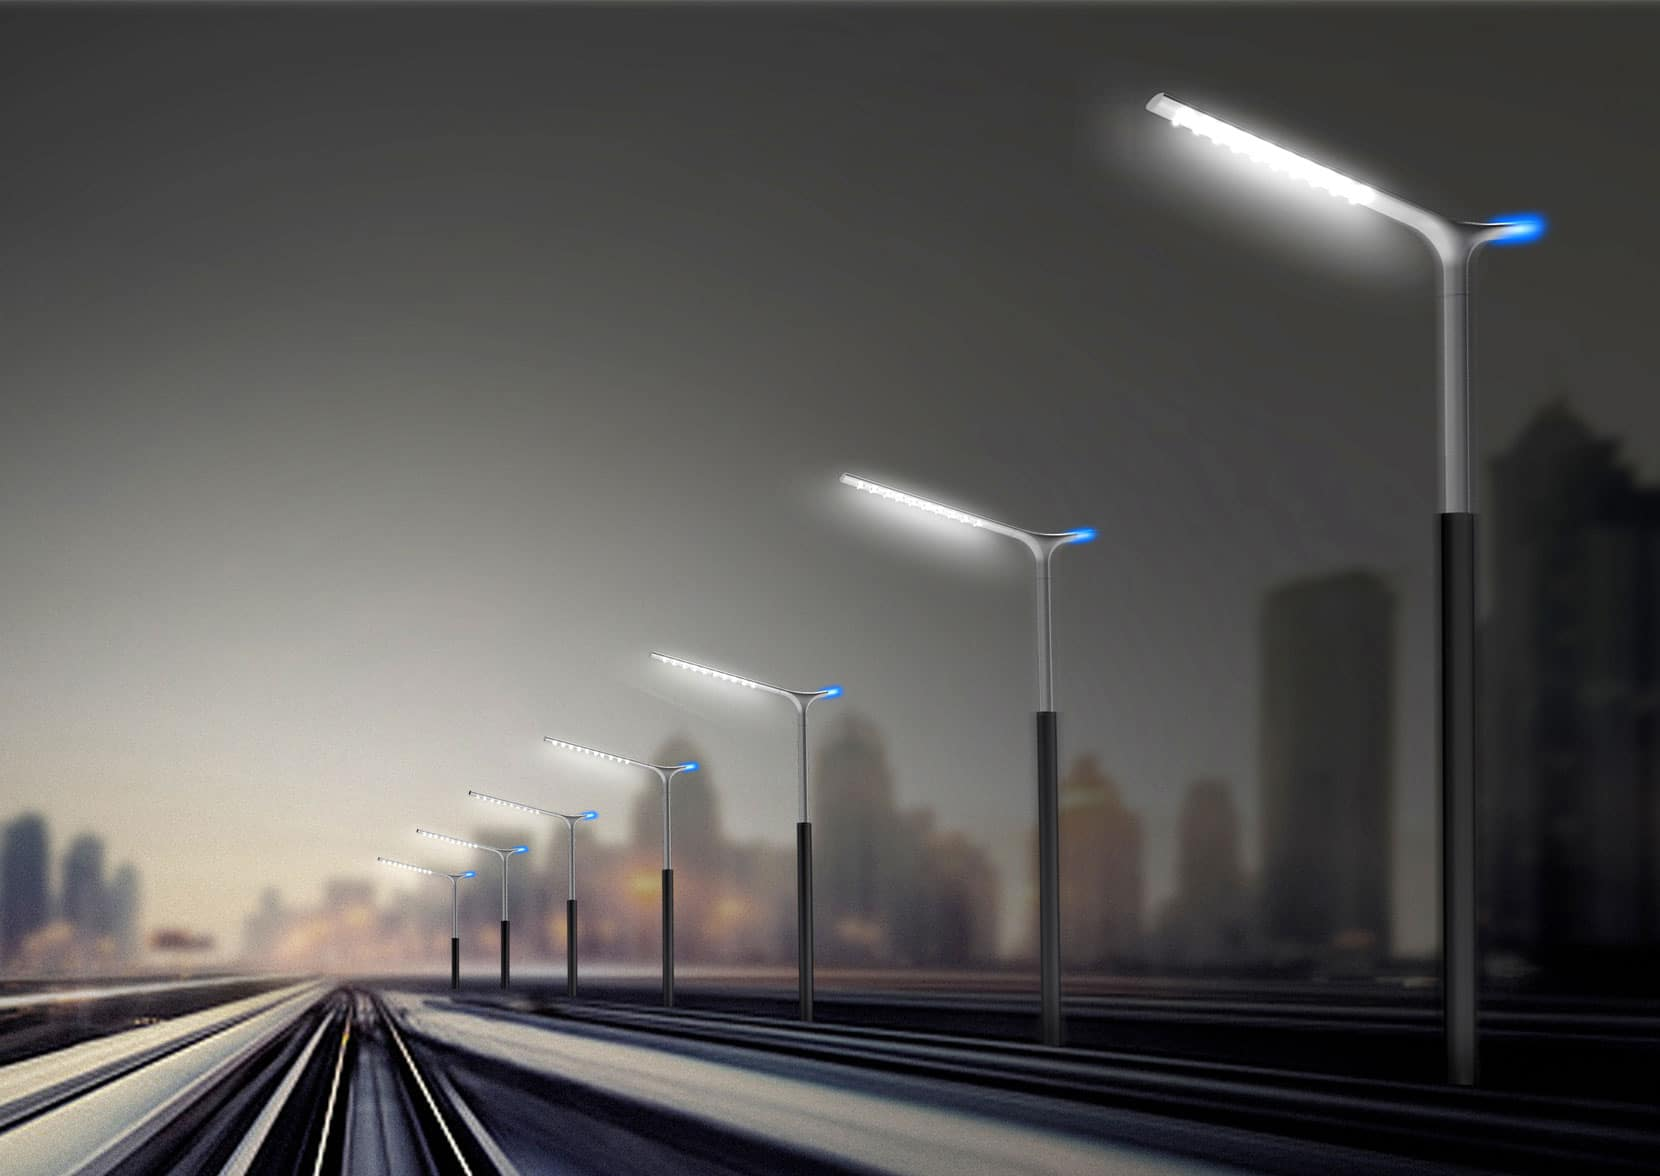 light industry buzz lights led in replacement project lighting largest launched street delhi worlds